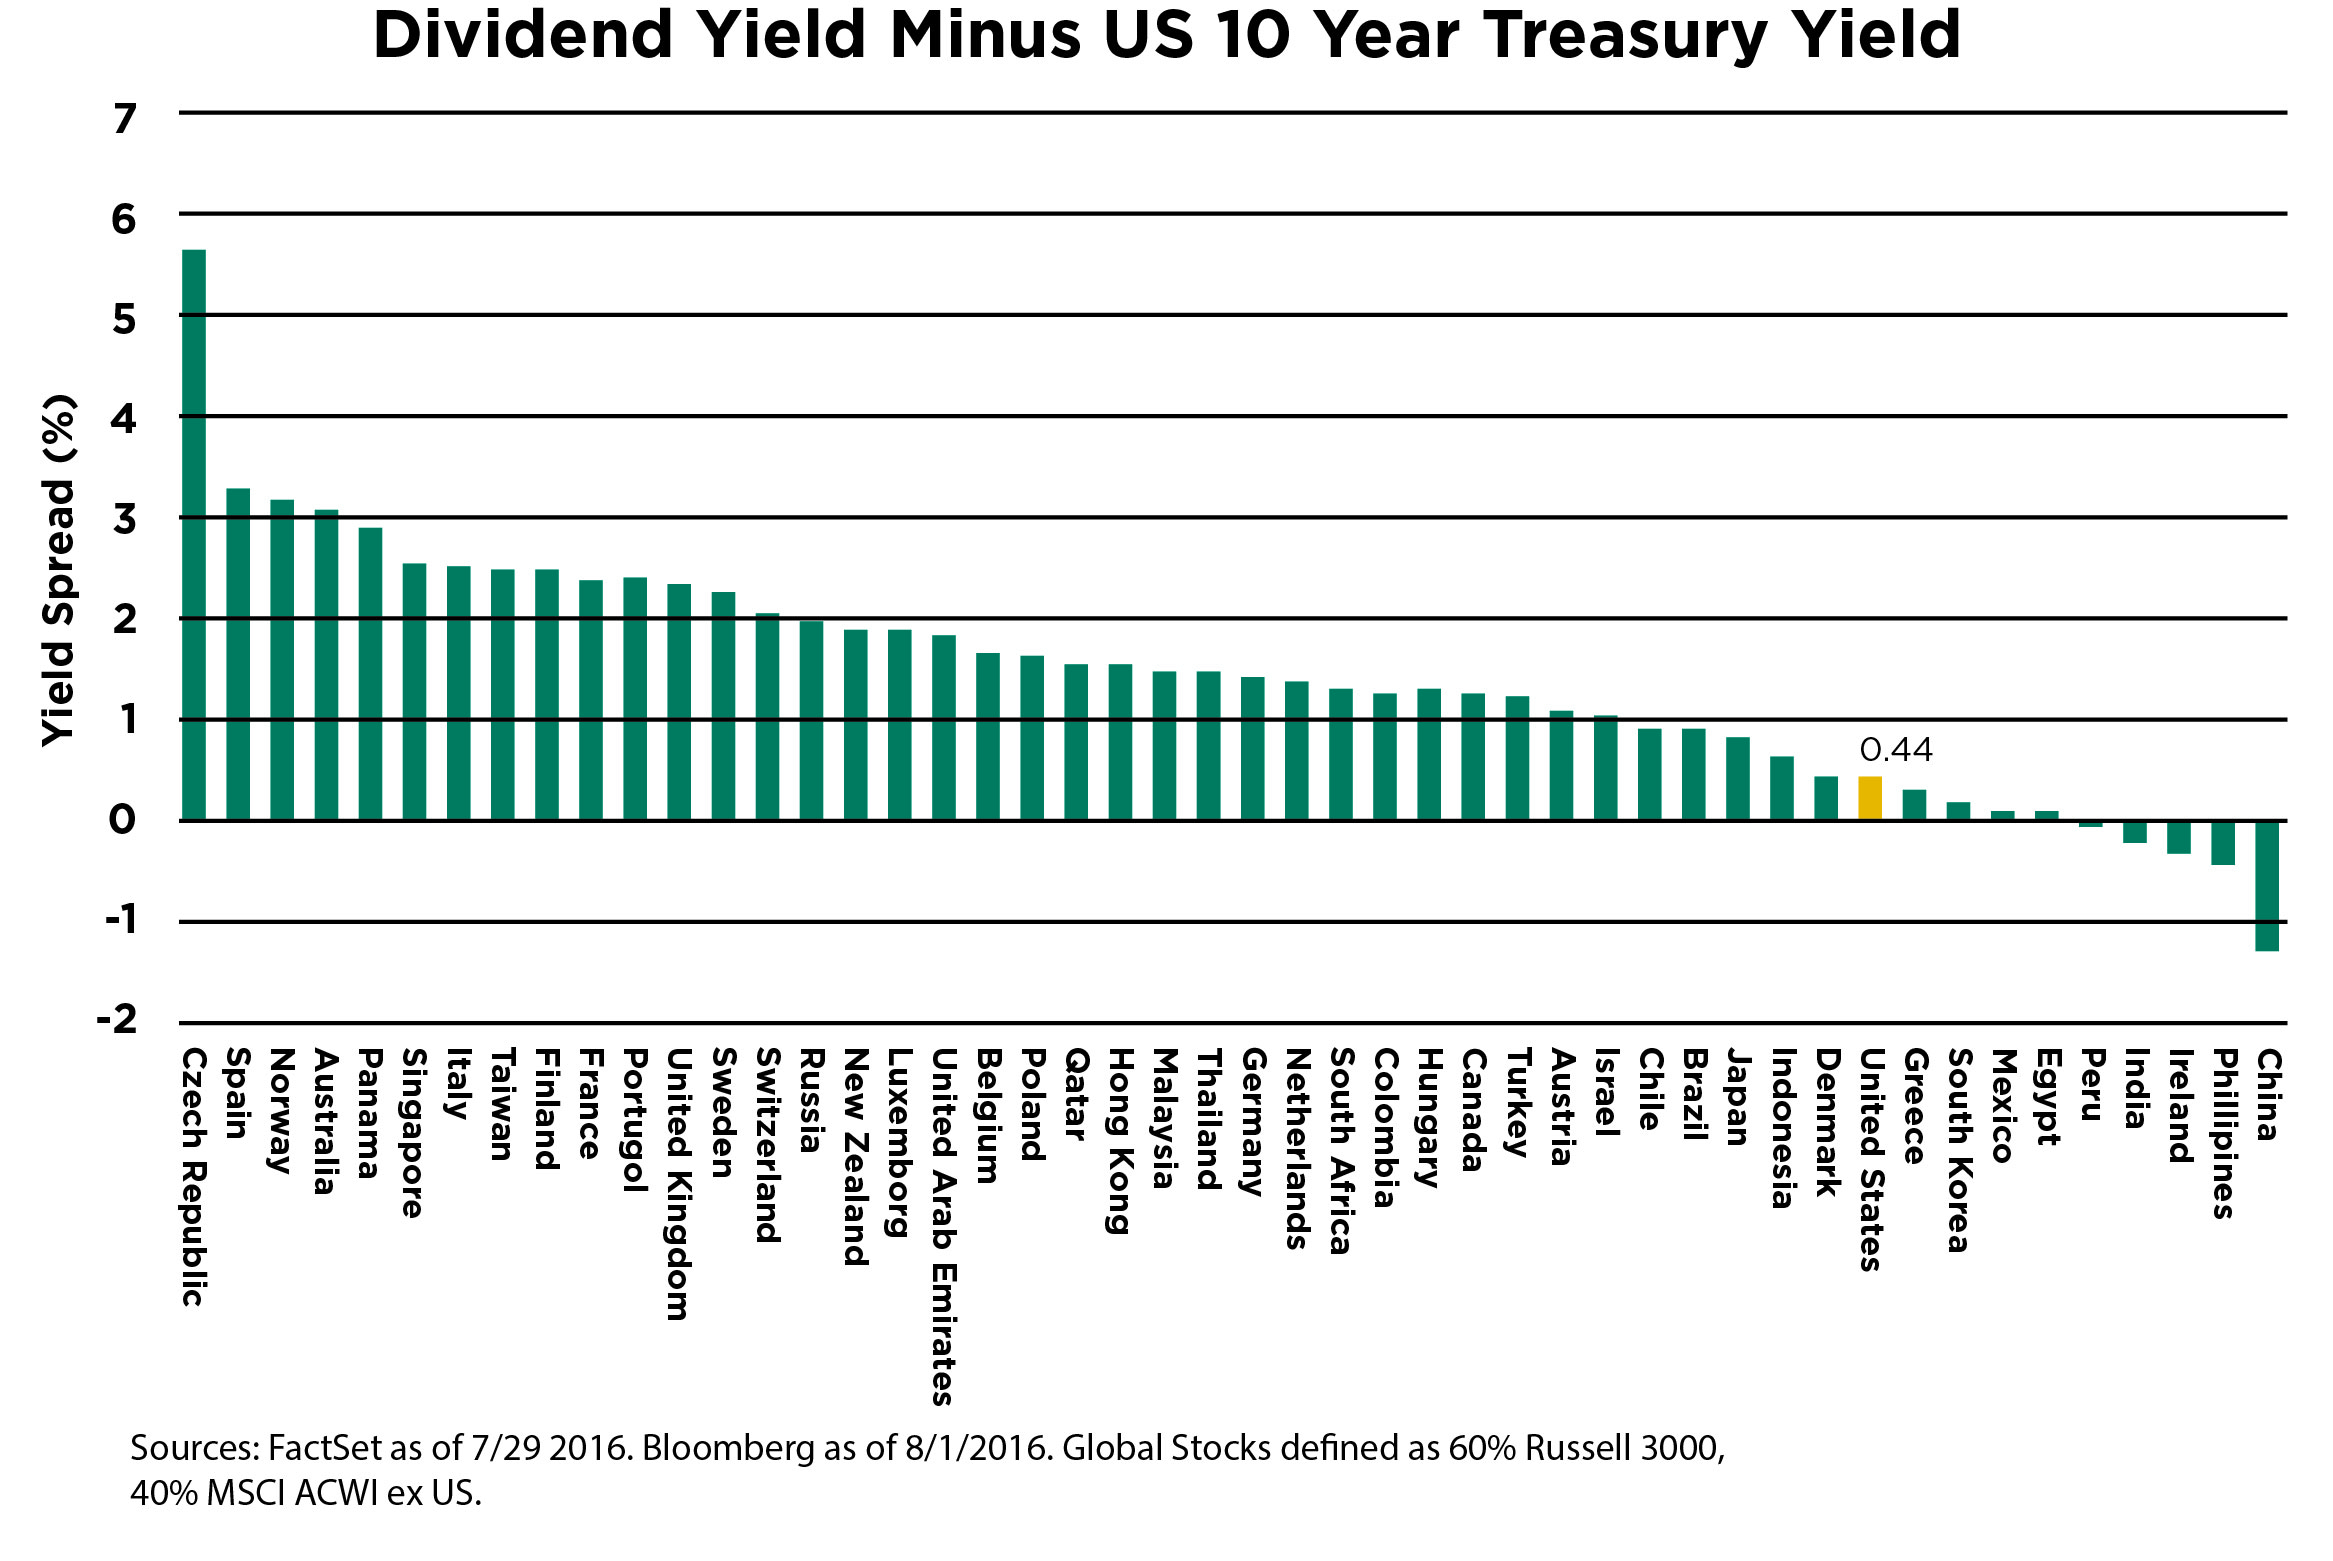 Dividend Yield Minus US 10 Year Treasury Yield